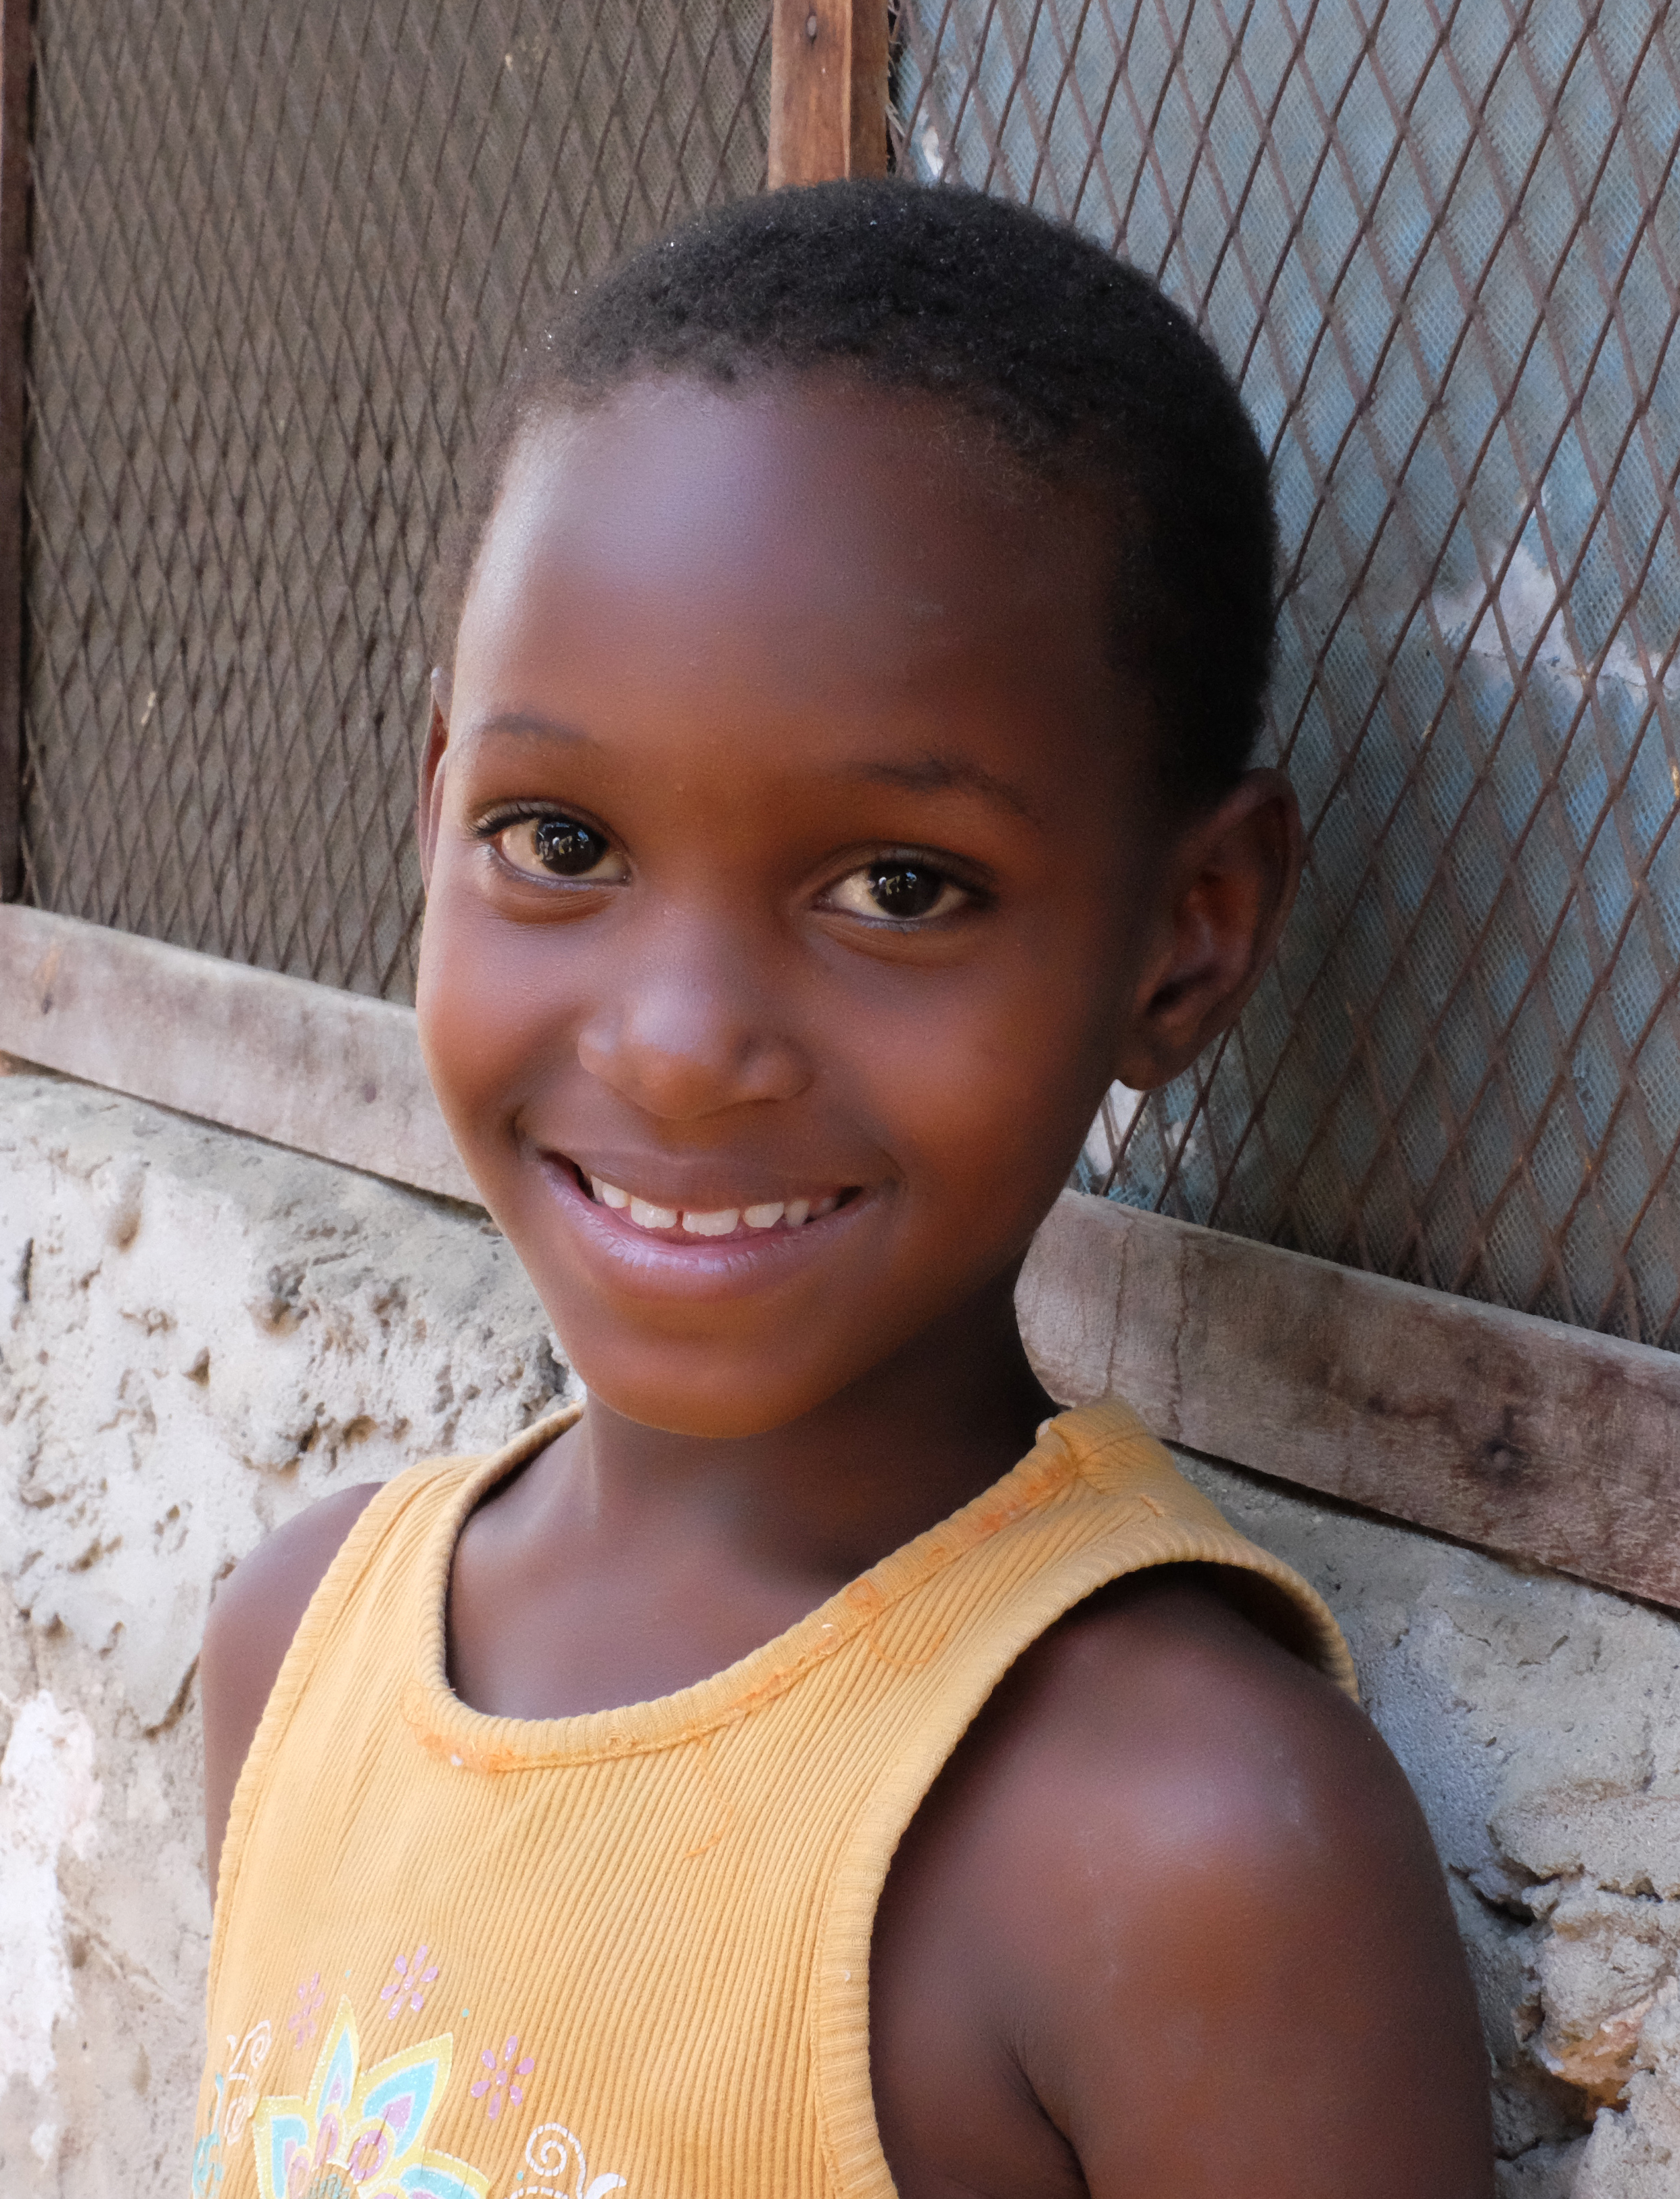 Riziki - our new sponsored child